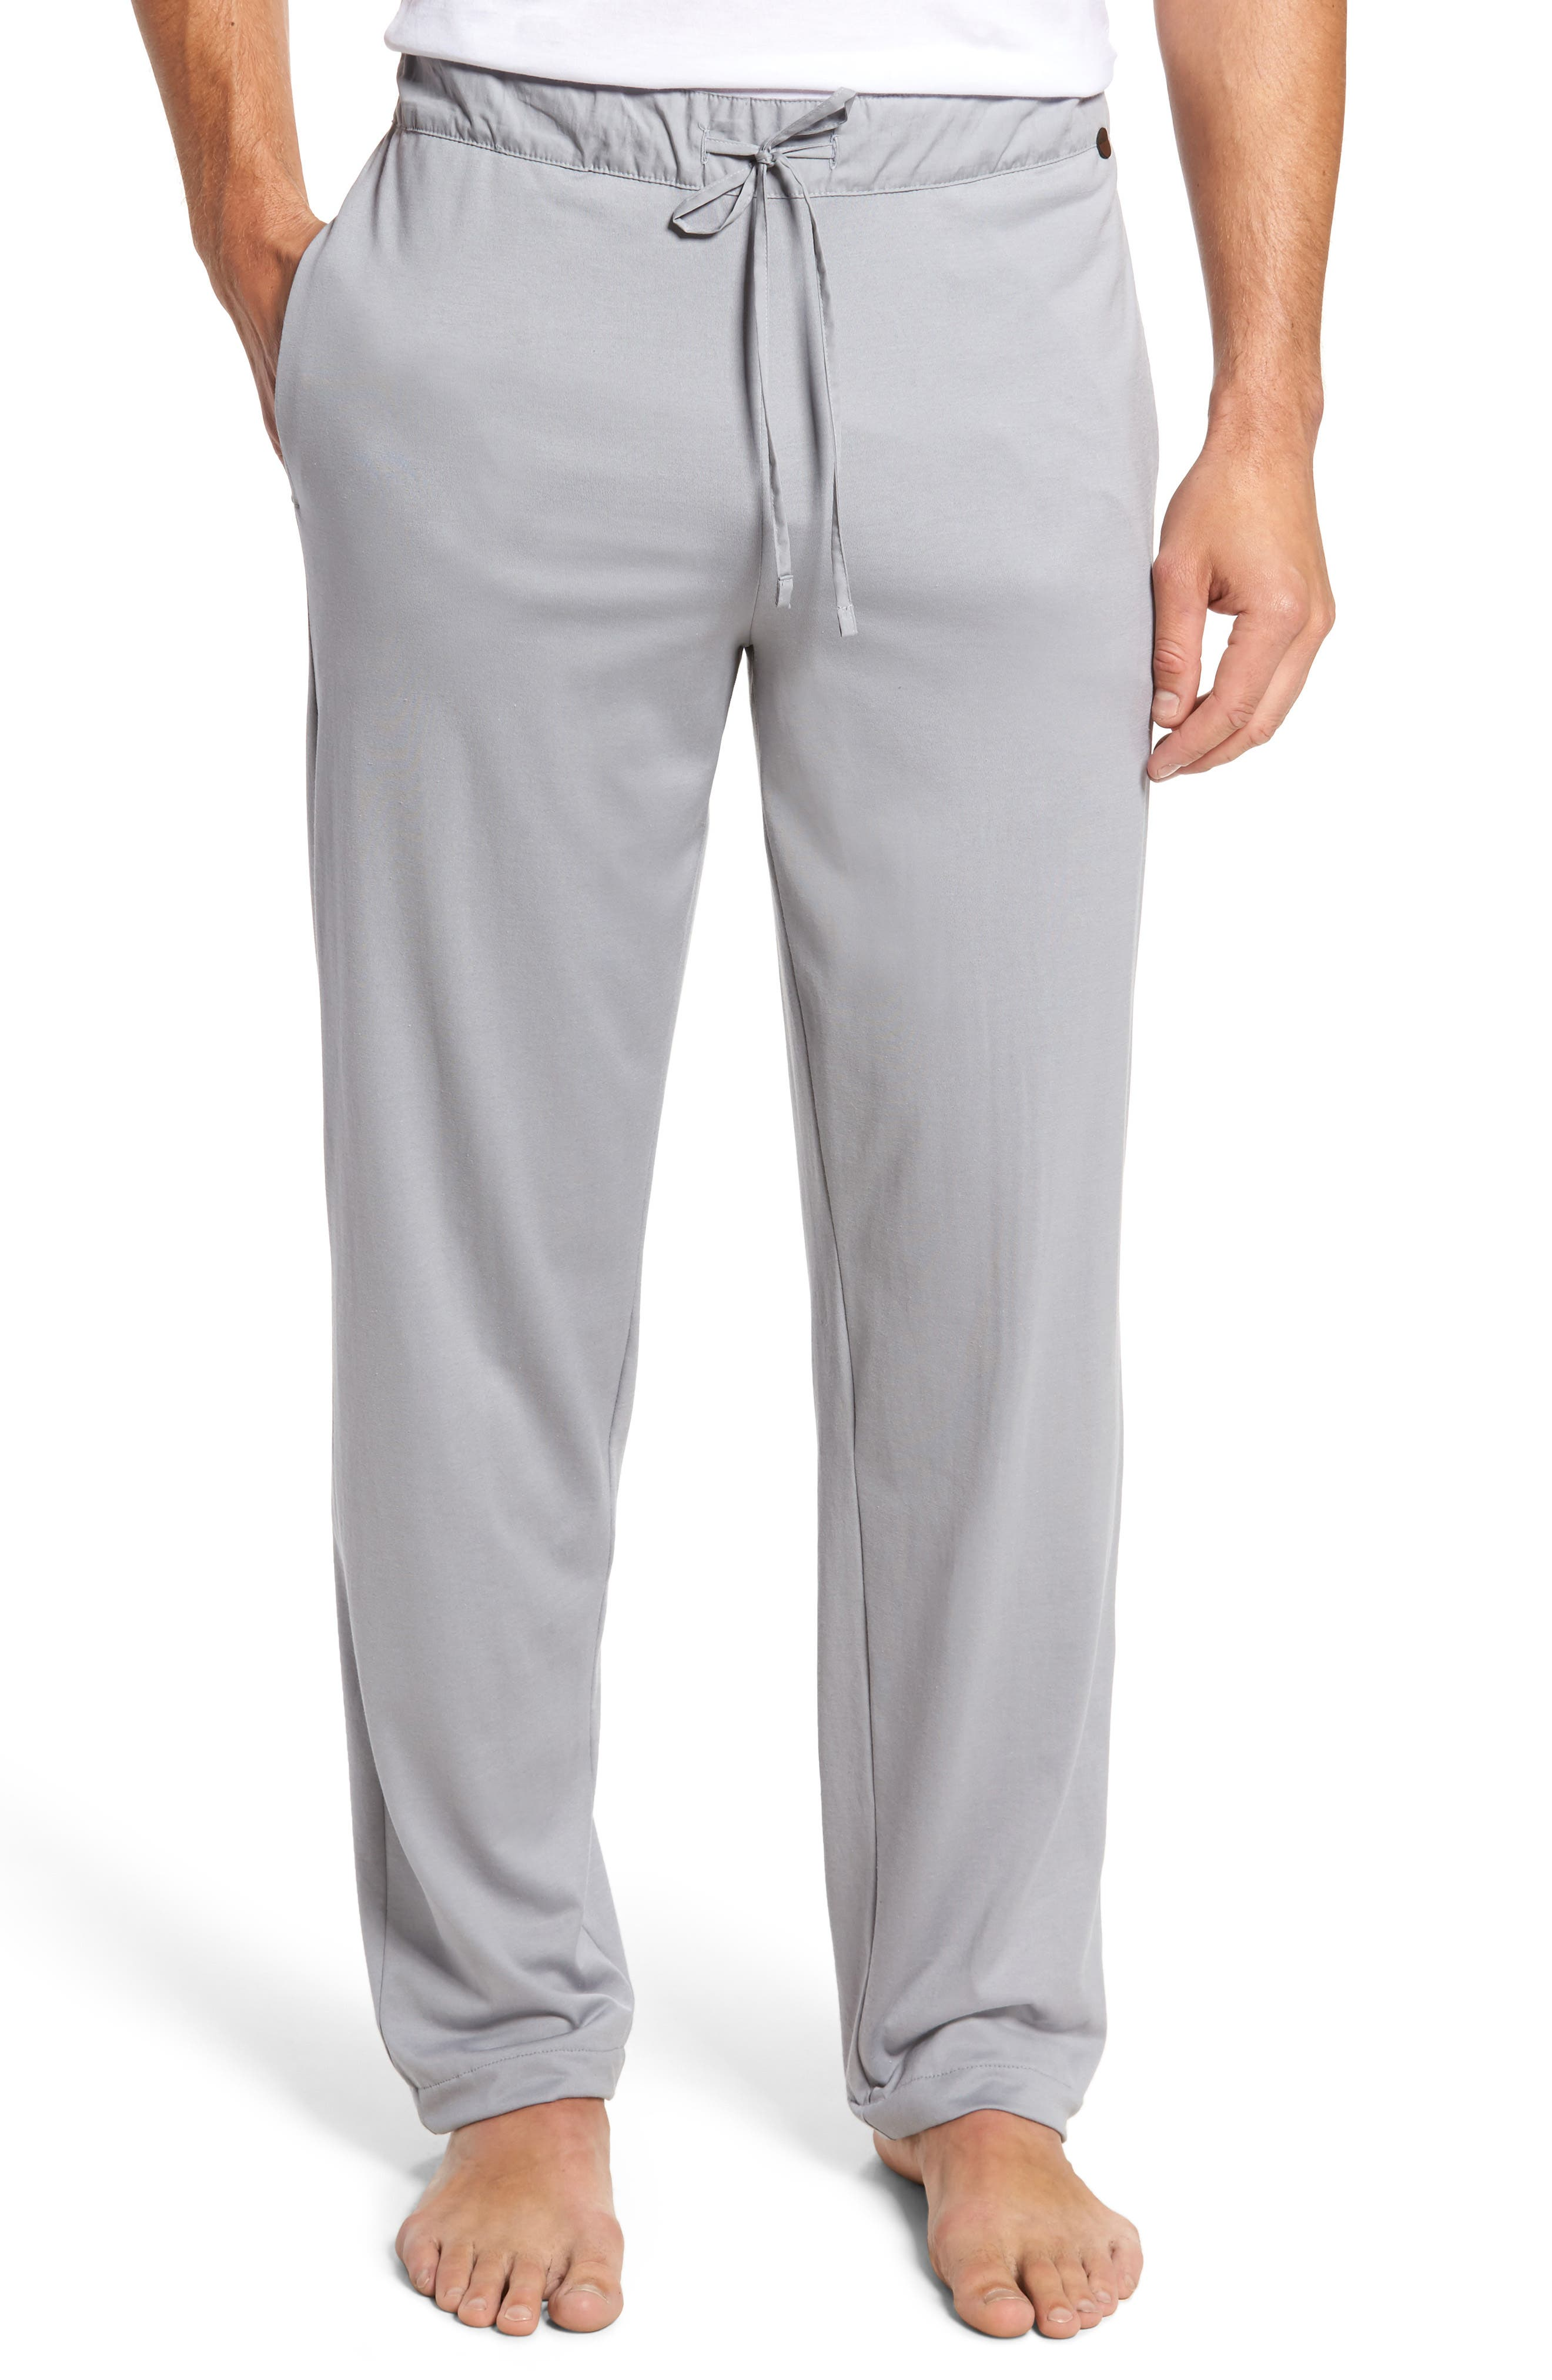 Alternate Image 1 Selected - Hanro Night & Day Knit Lounge Pants